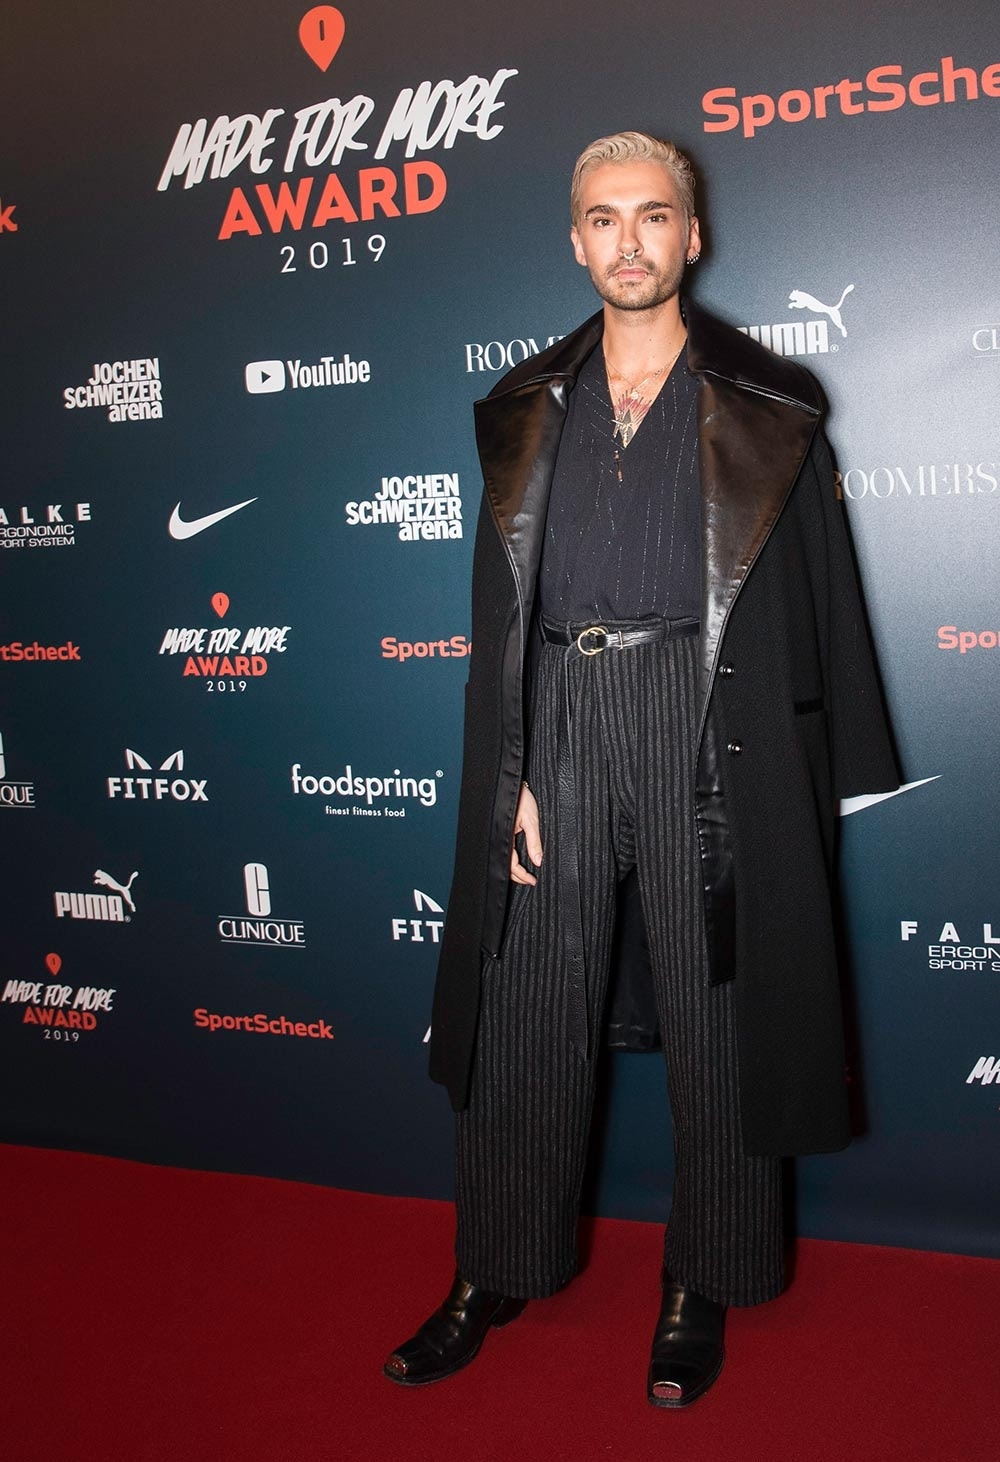 Bill Kaulitz auf dem roten Teppich beim Made for More Award